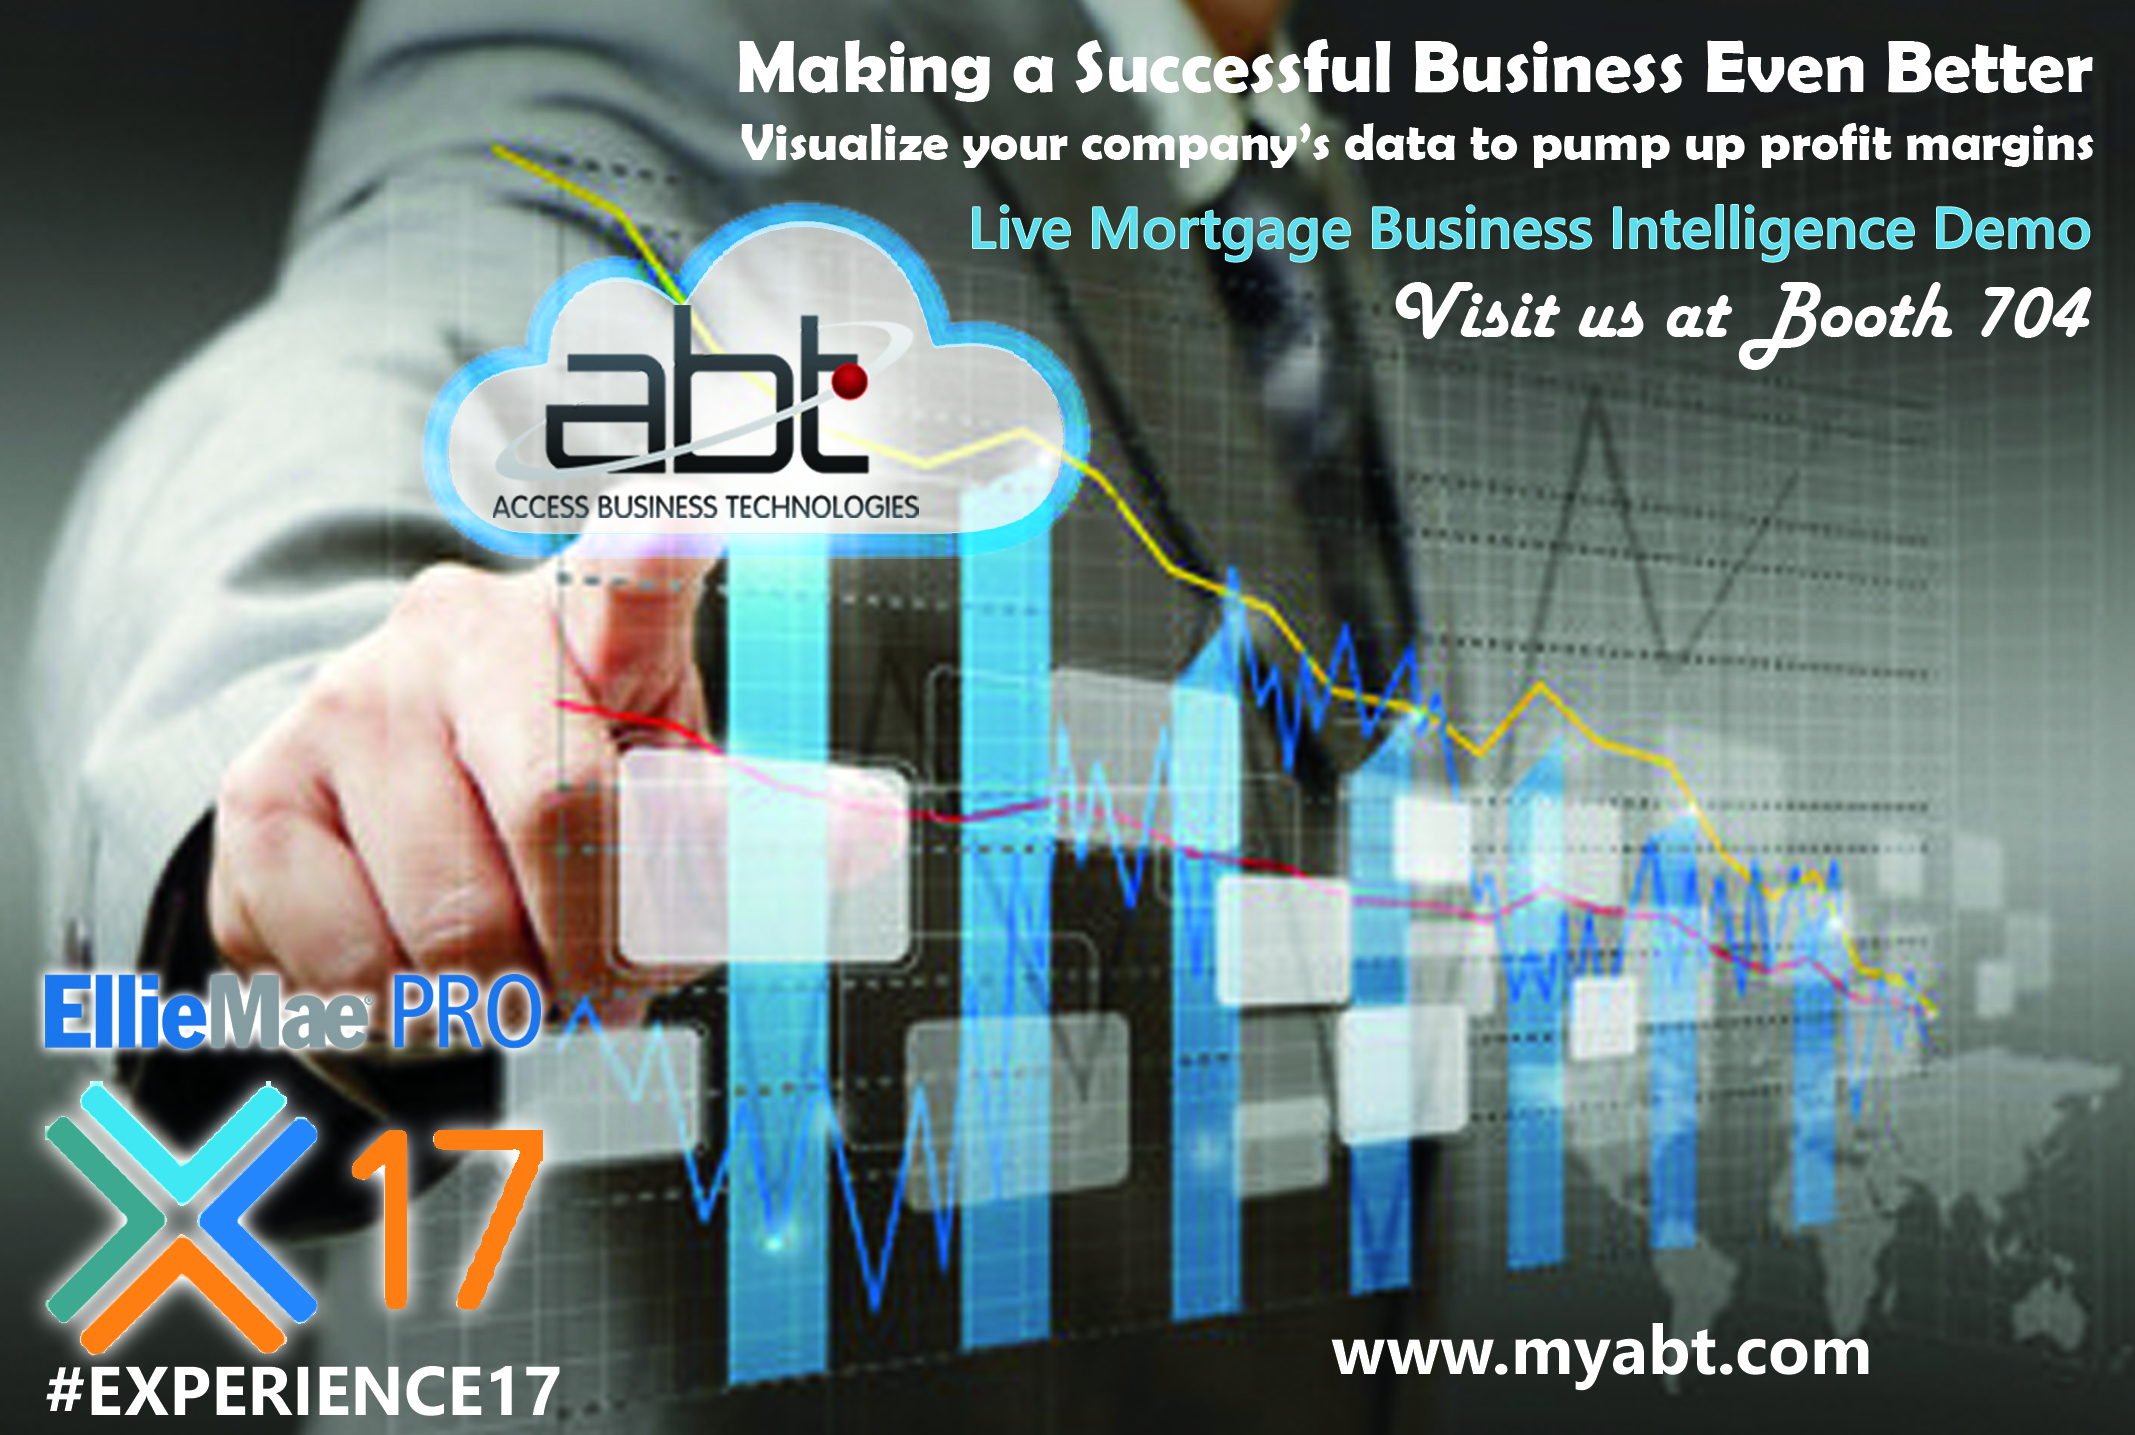 ABT will be at the Ascent Live 2017 Mortgage Cadence Conference